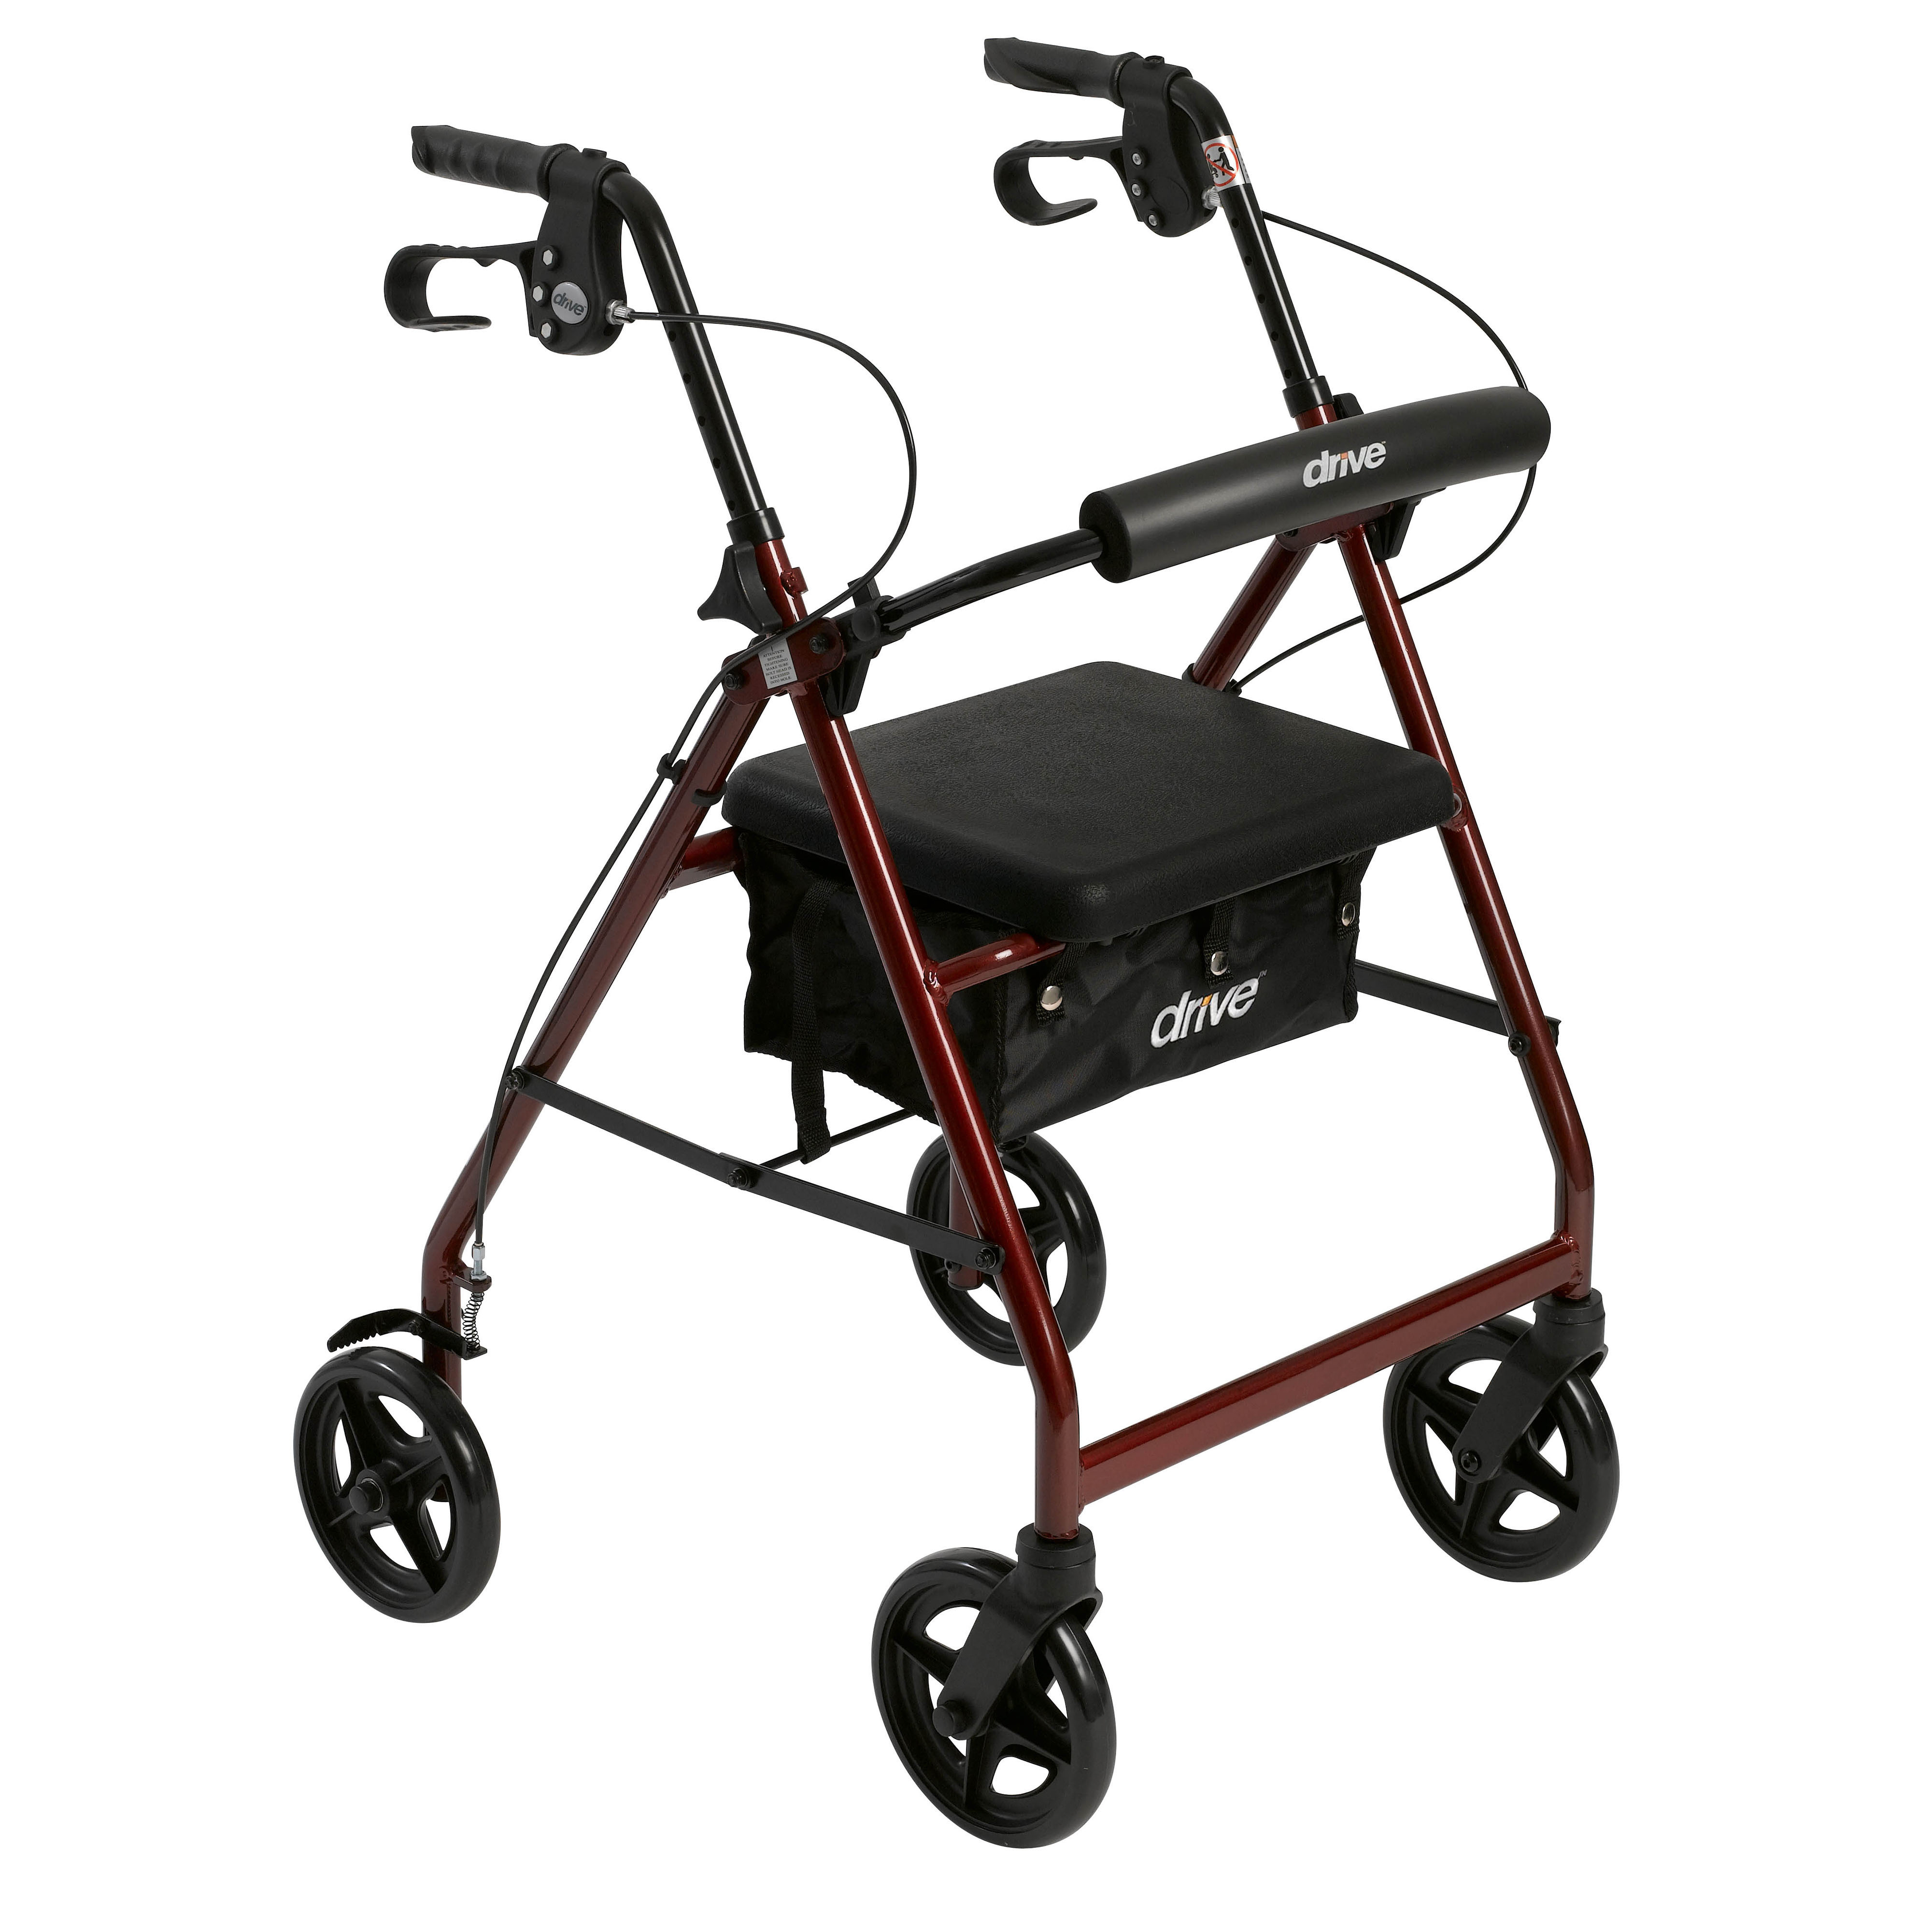 Drive Medical Aluminum Rollator Rolling Walker with Fold Up and Removable Back Support and Padded Seat, Red